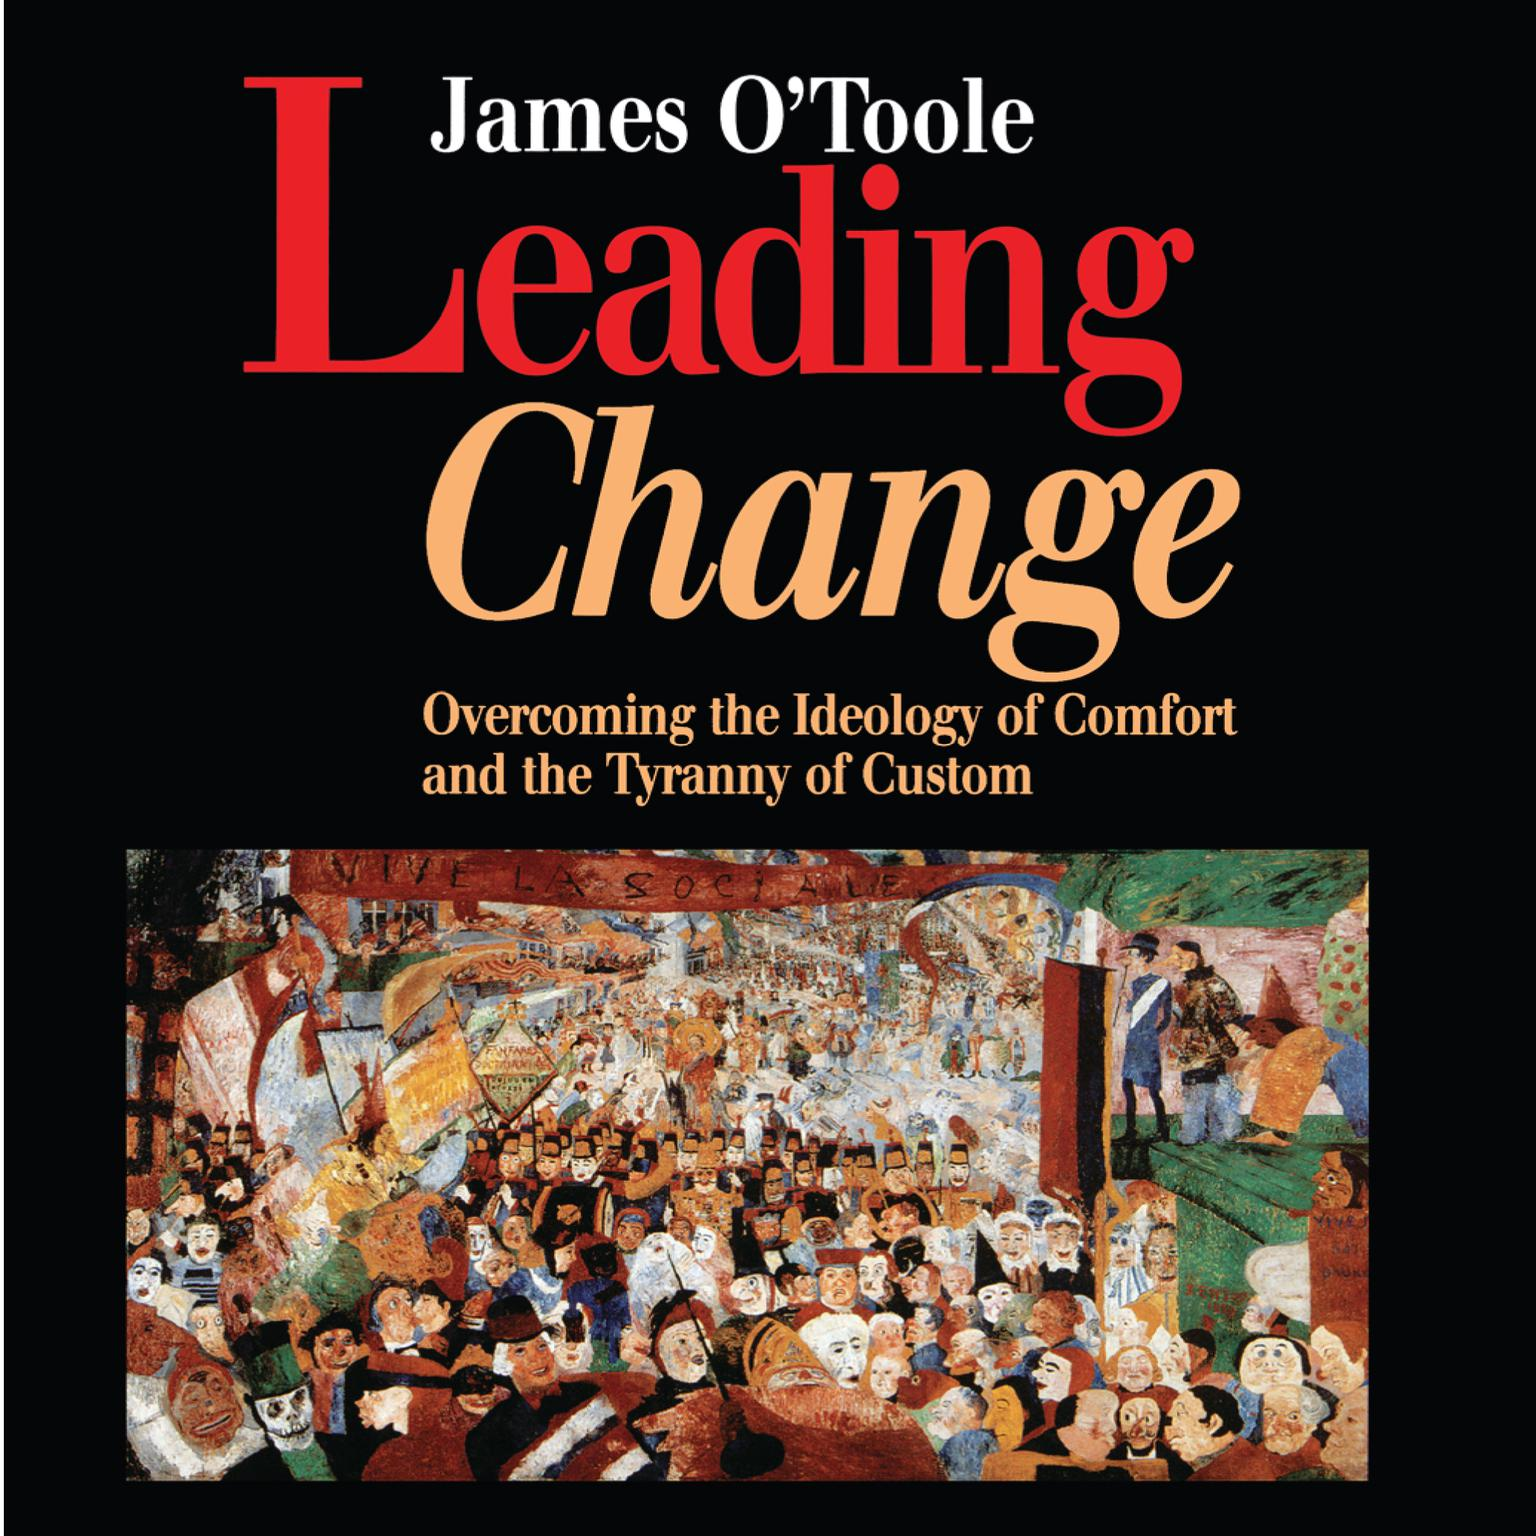 Leading Change: Overcoming the Ideology of Comfort and the Tyranny of Custom Audiobook, by James O'Toole